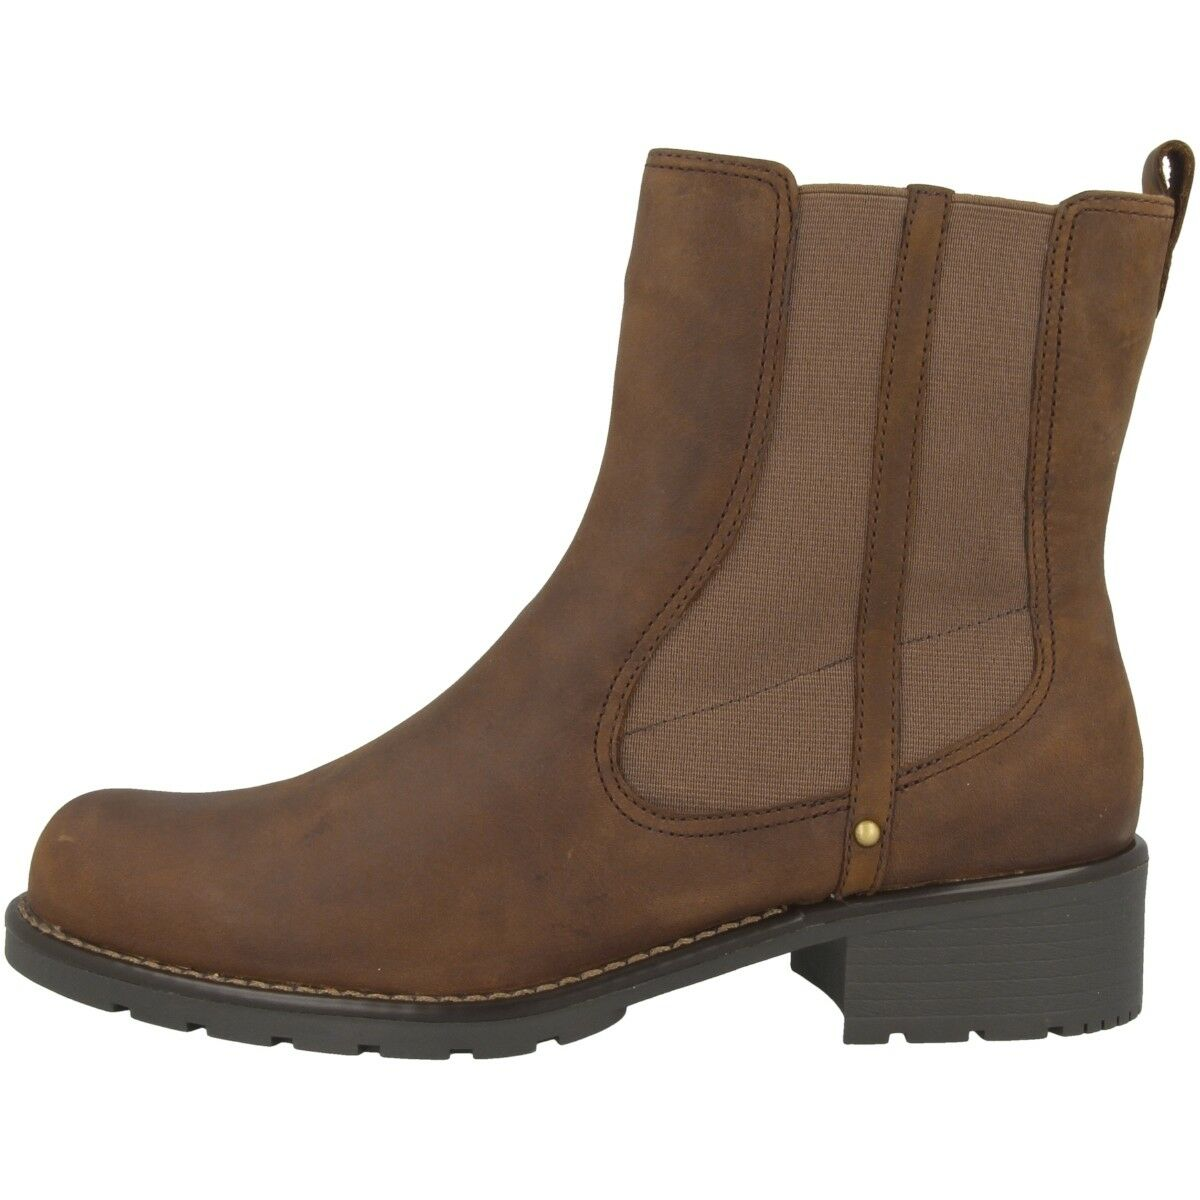 Clarks Orinoco Club brown Schuhe Damen Leder Siefel Women Boots brown Club Pearl 20340917 ec543e